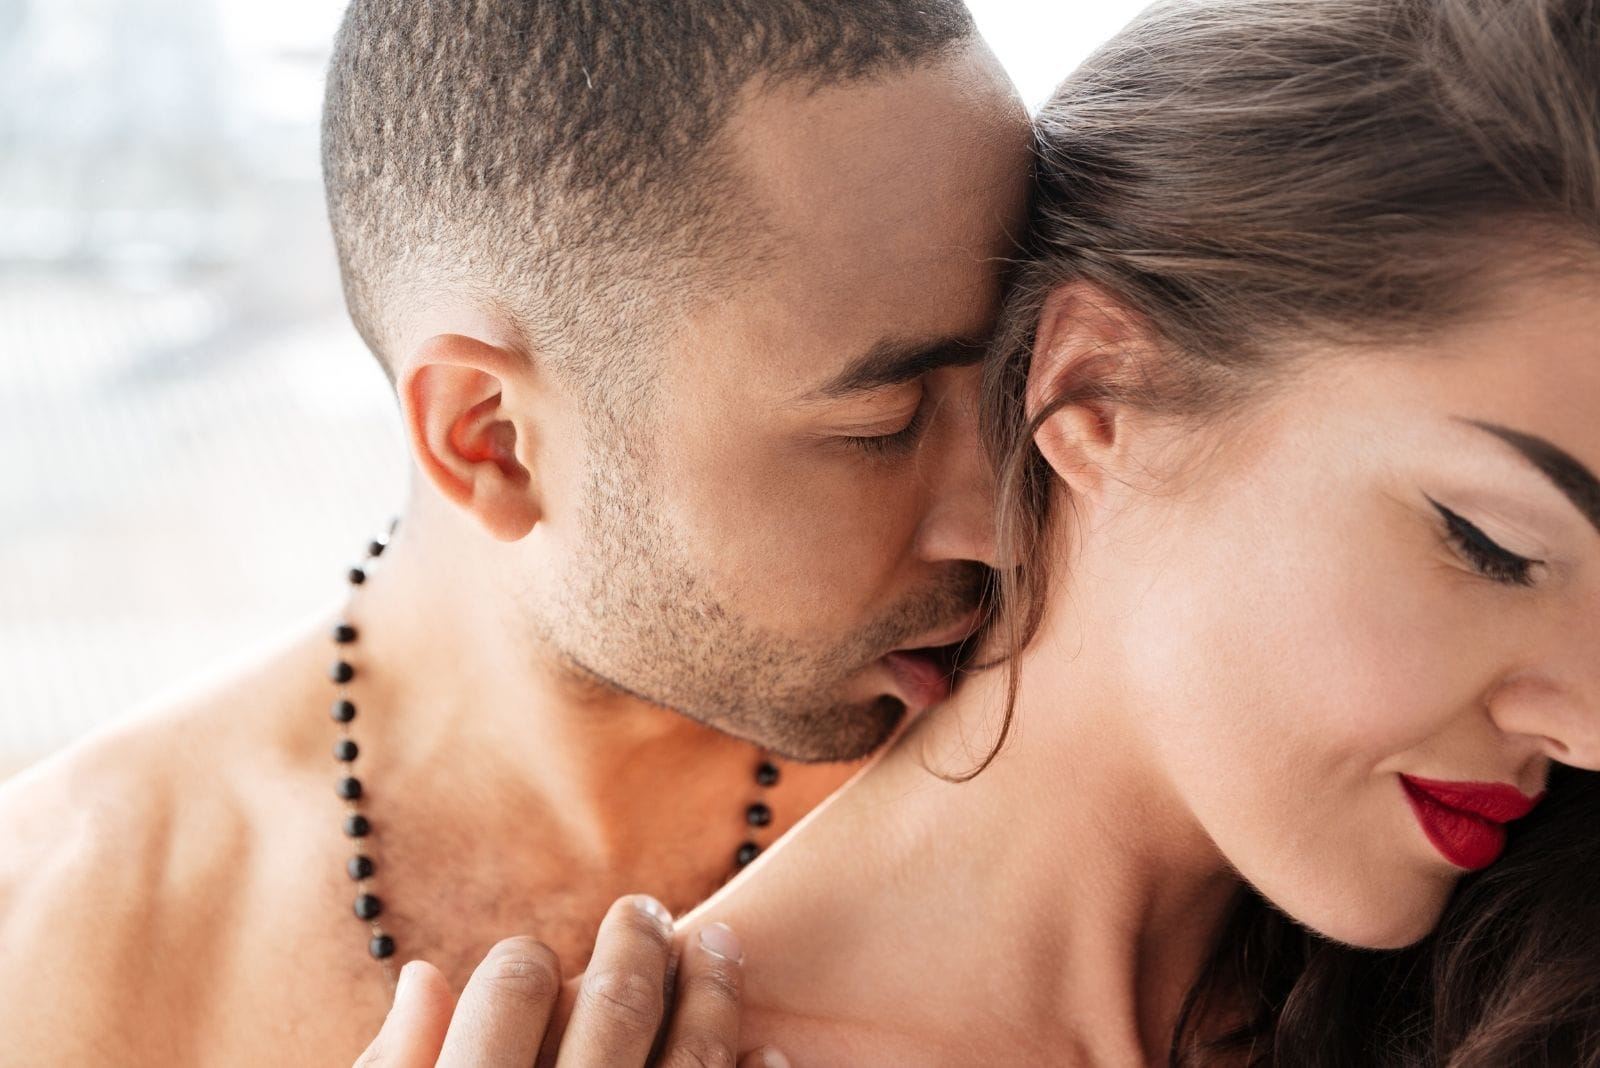 young man kissing passionately the woman's neck